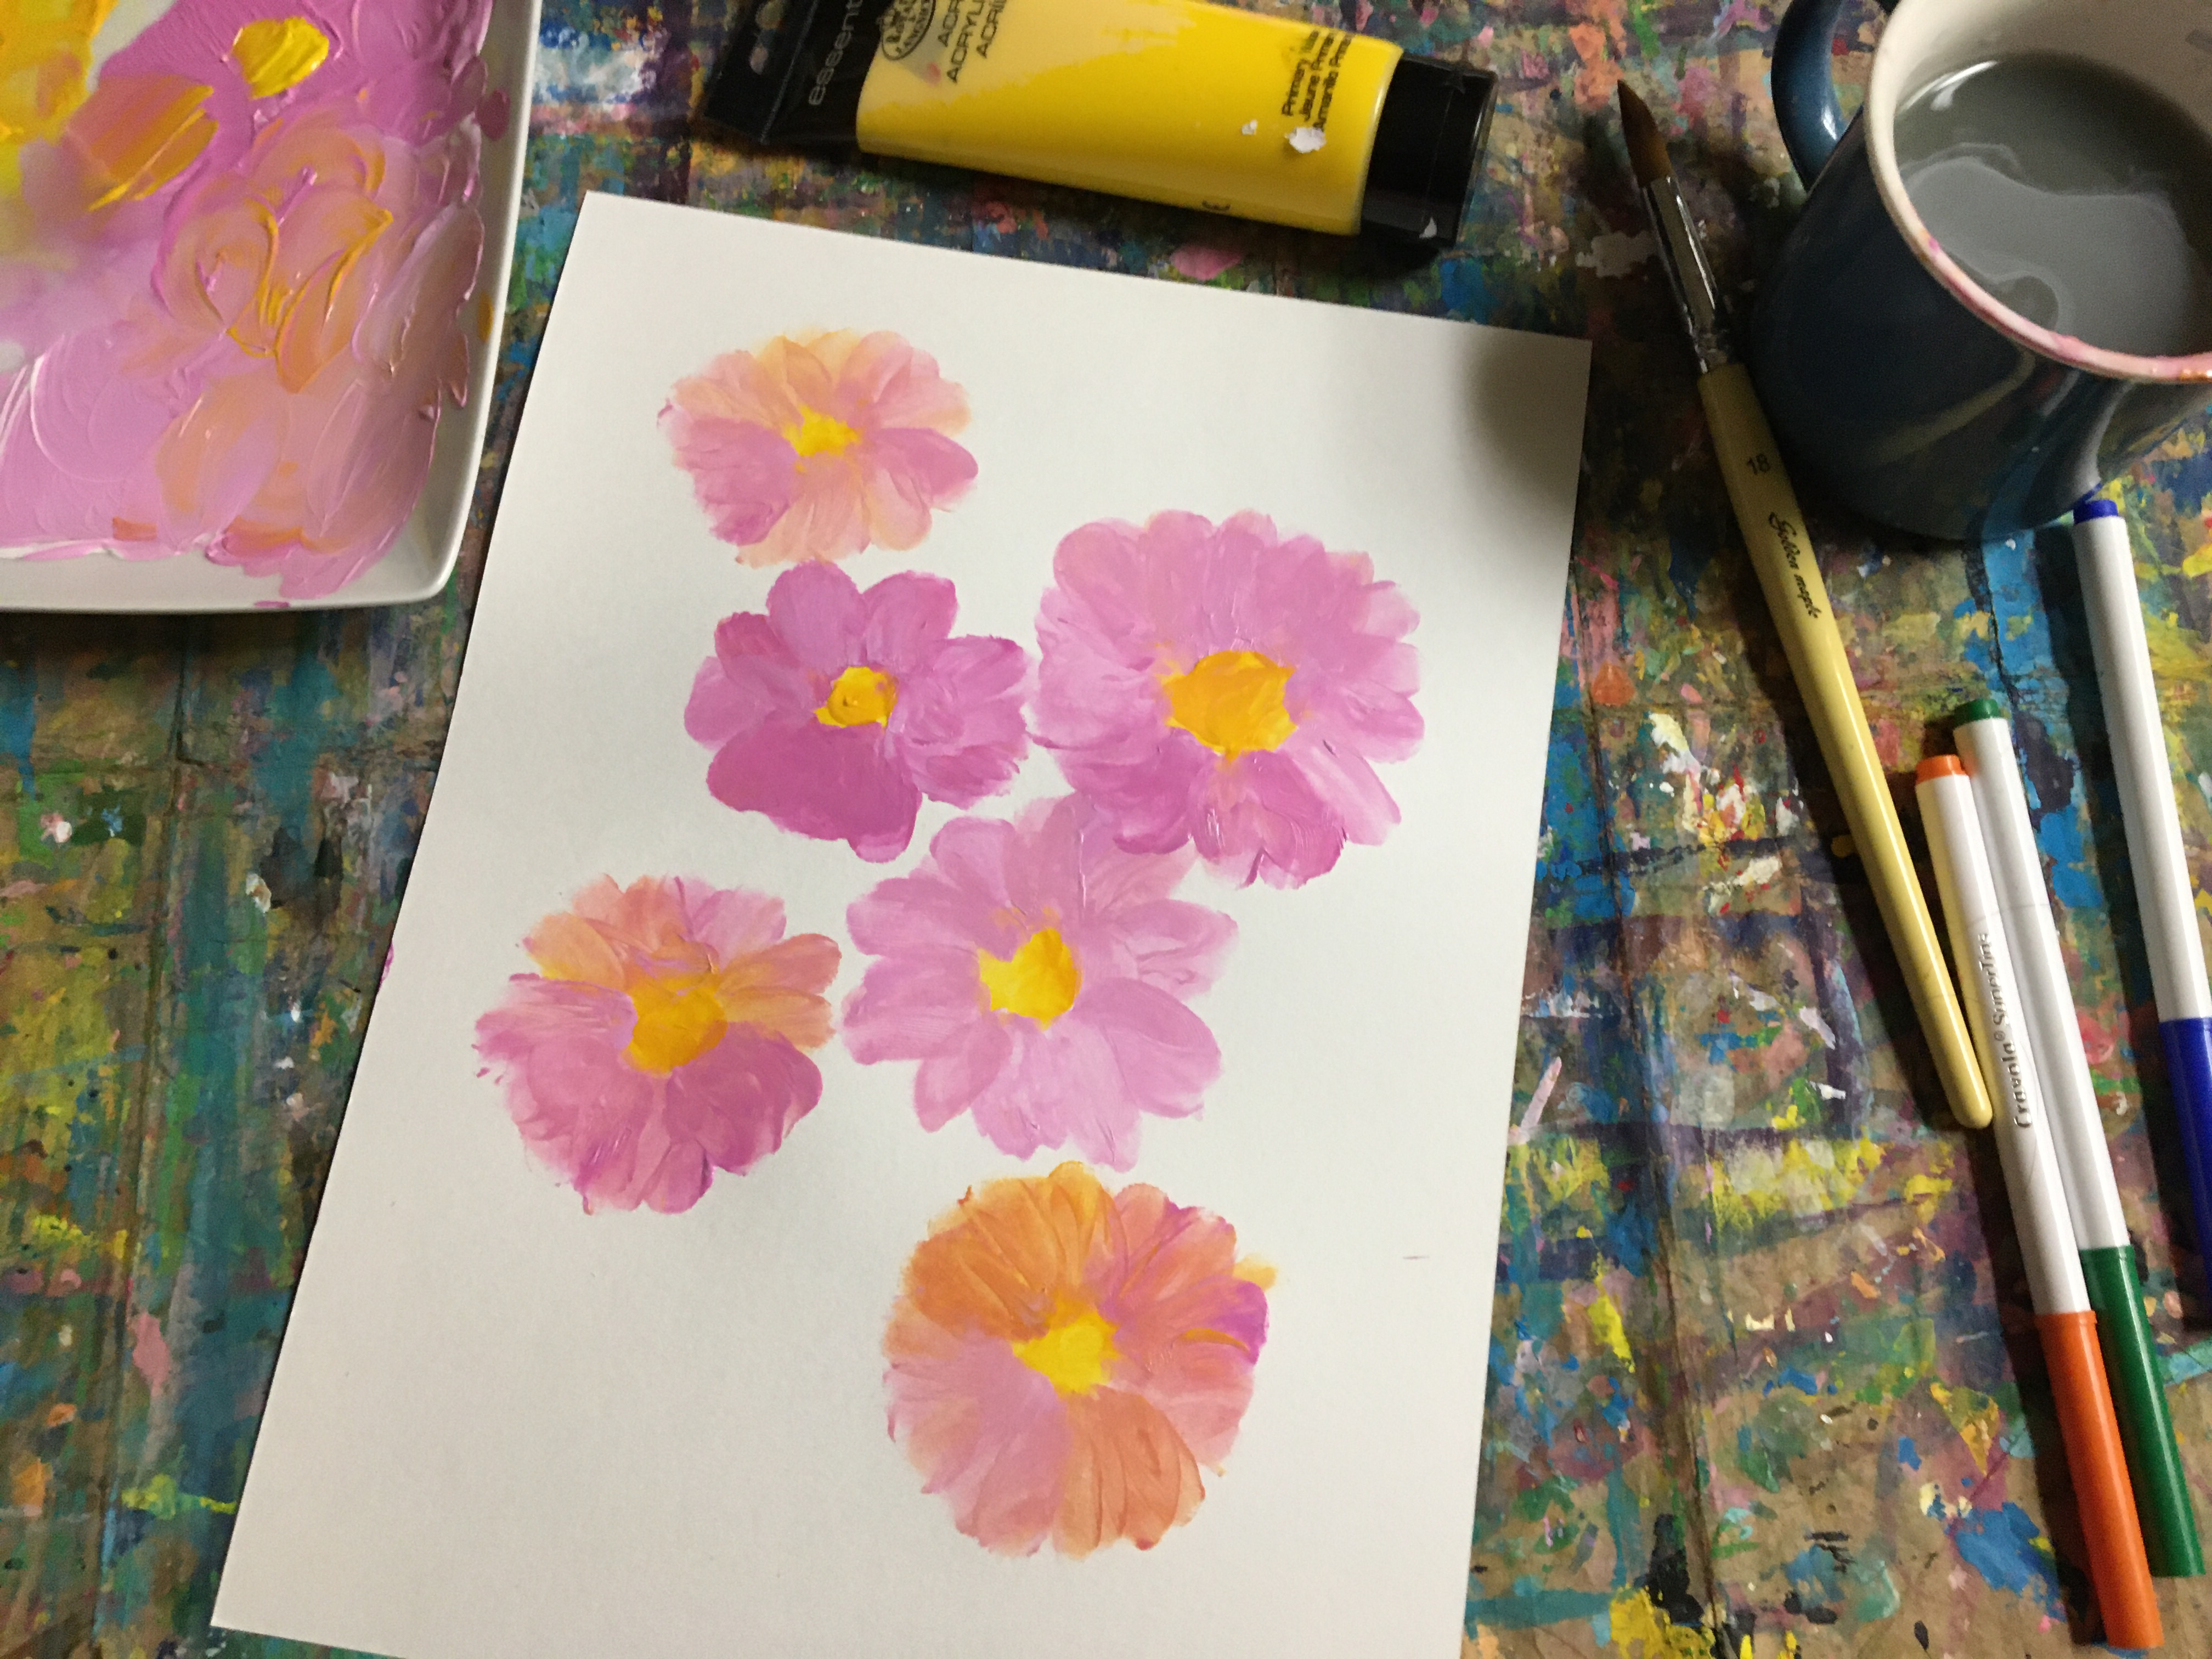 pink flowers using your fingers to blend color and make flowers